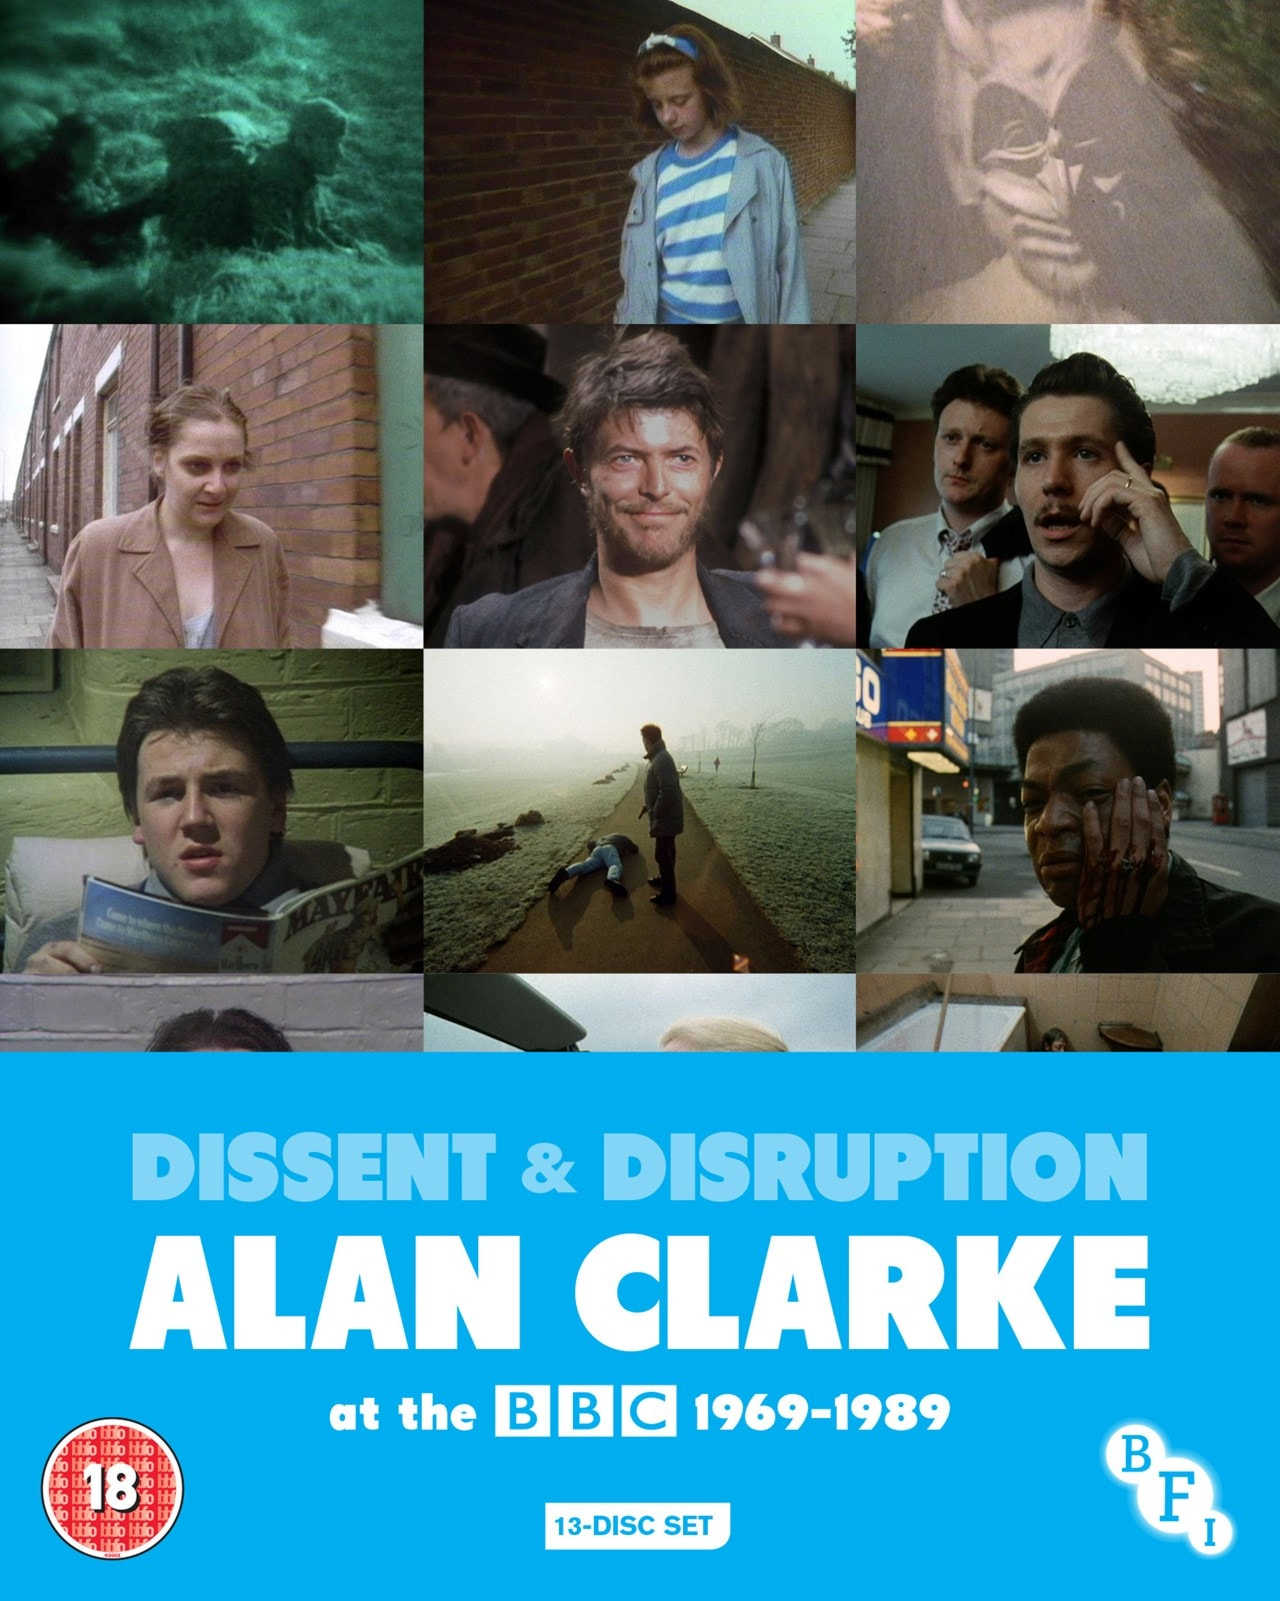 Dissent and Disruption - Alan Clarke at the BBC 1969-1989 - 1